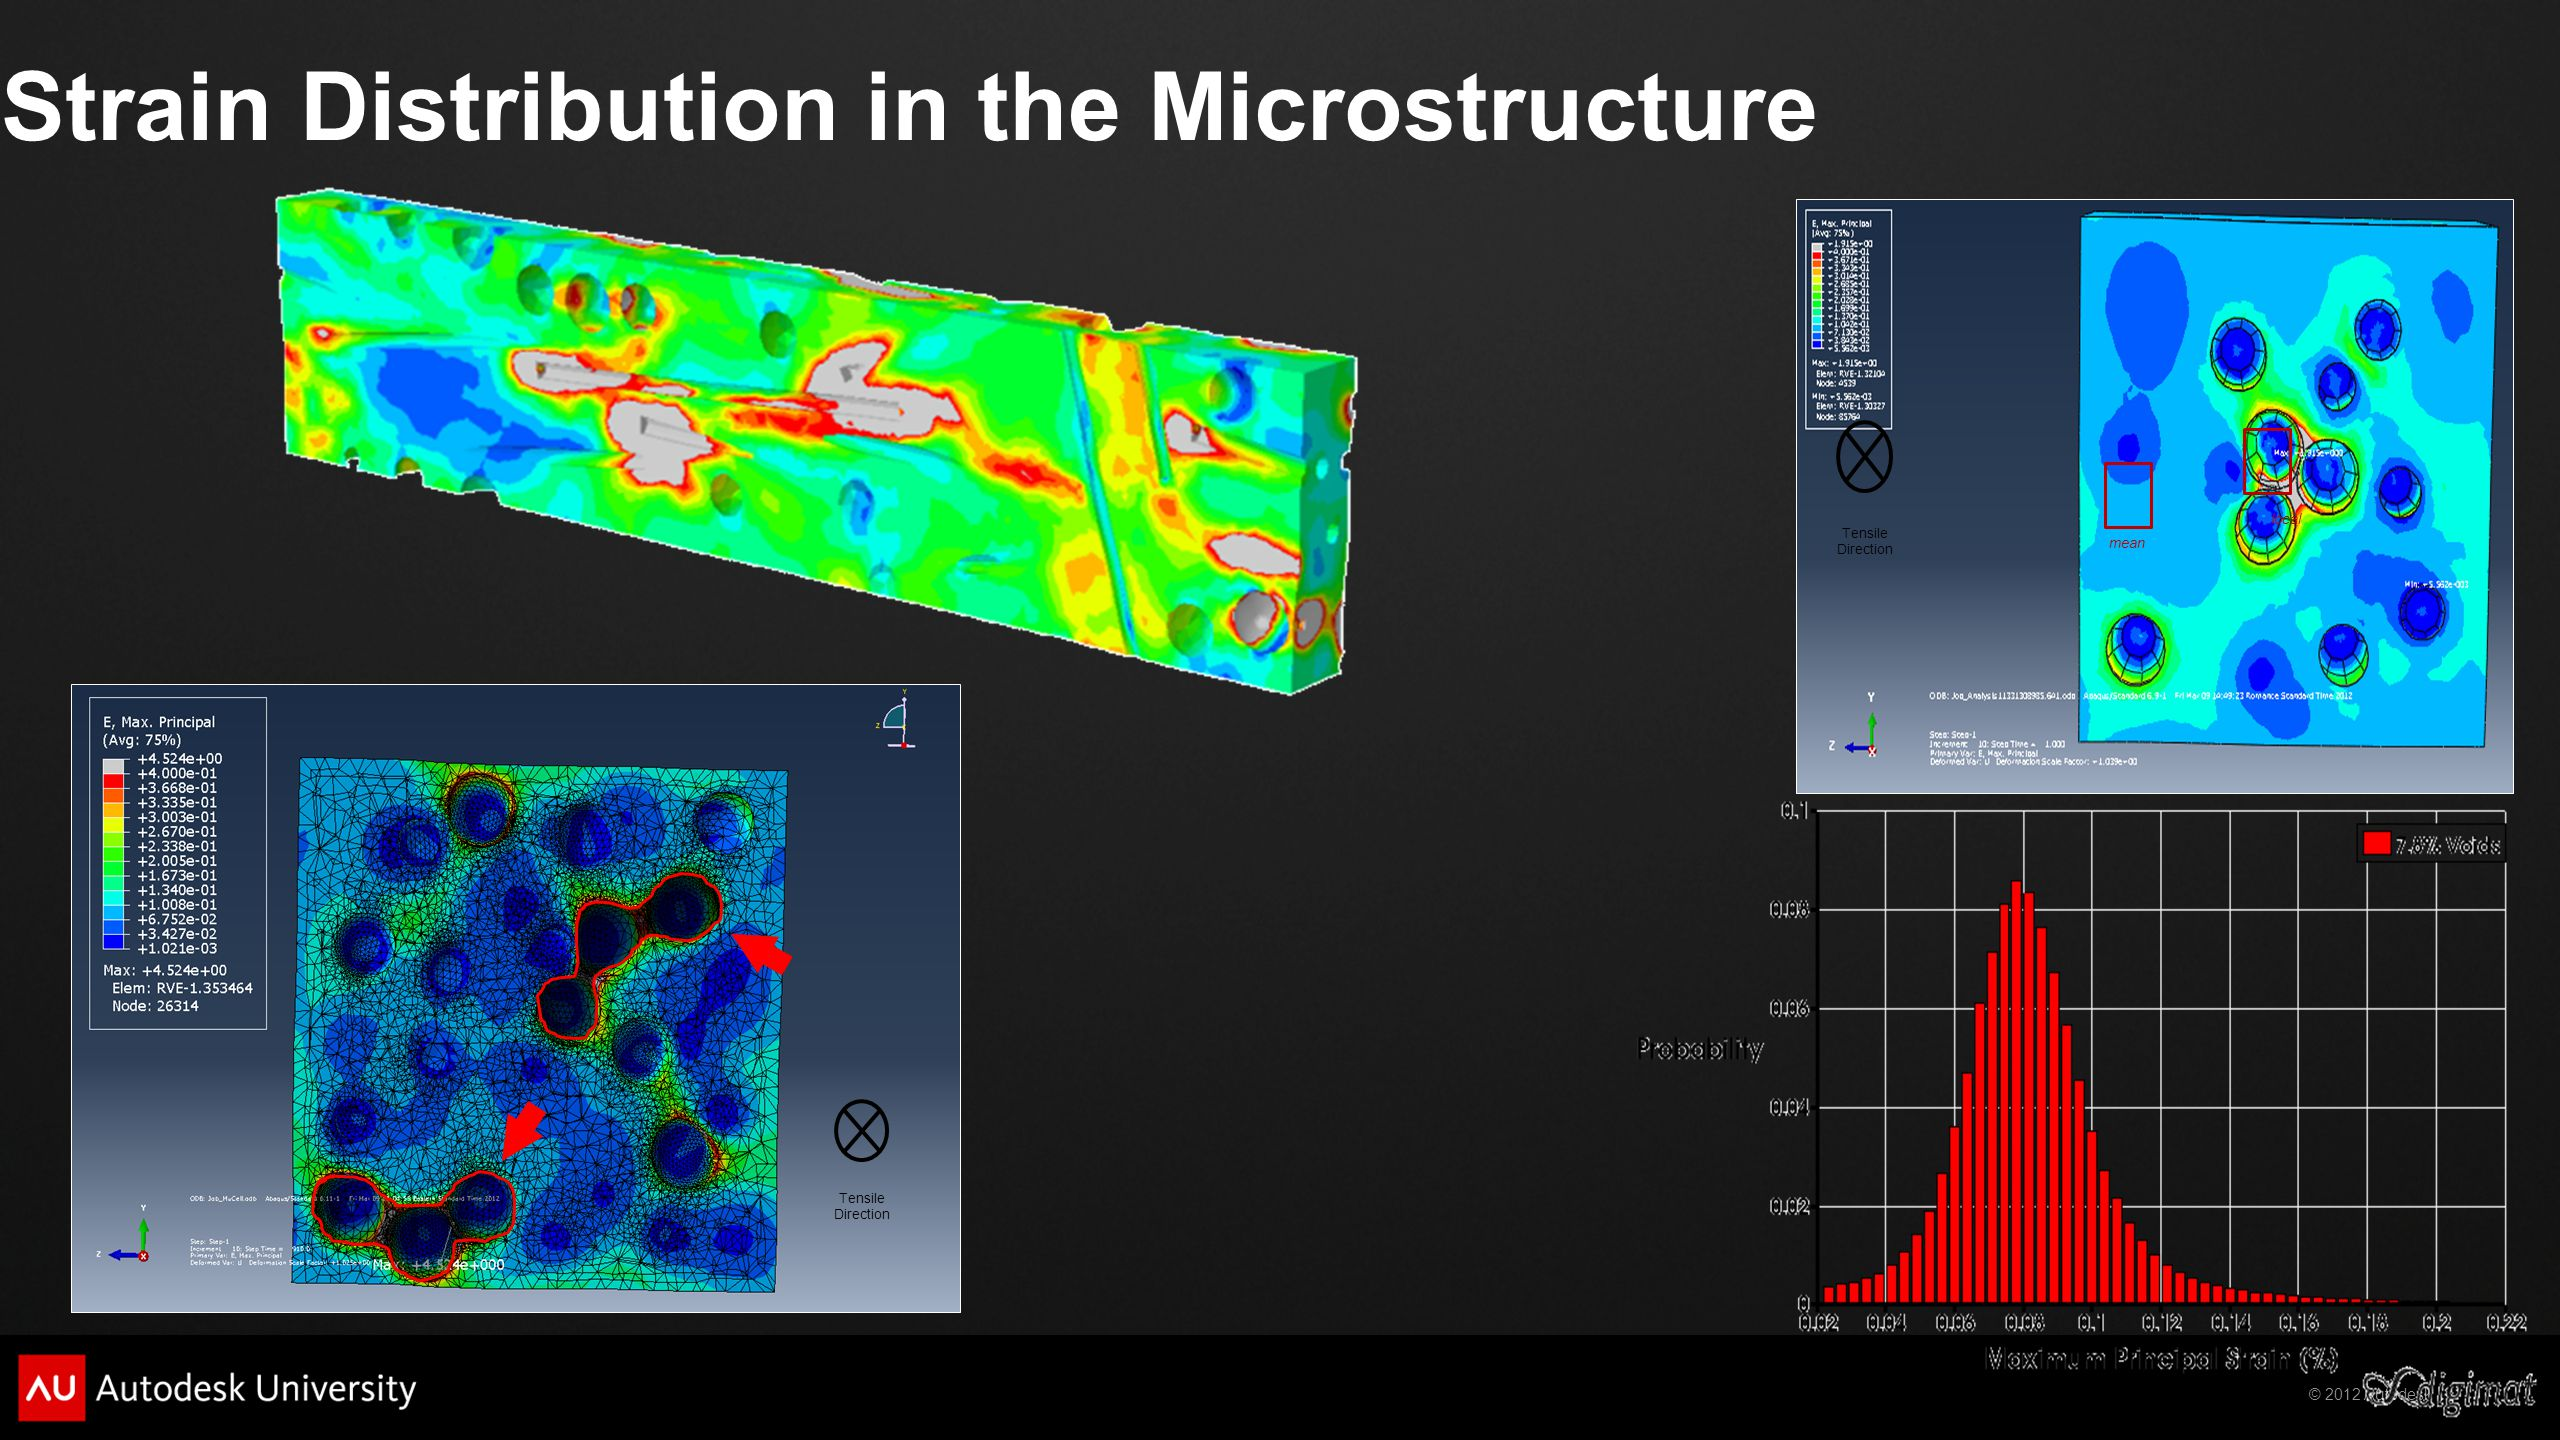 Strain Distribution in the Microstructure